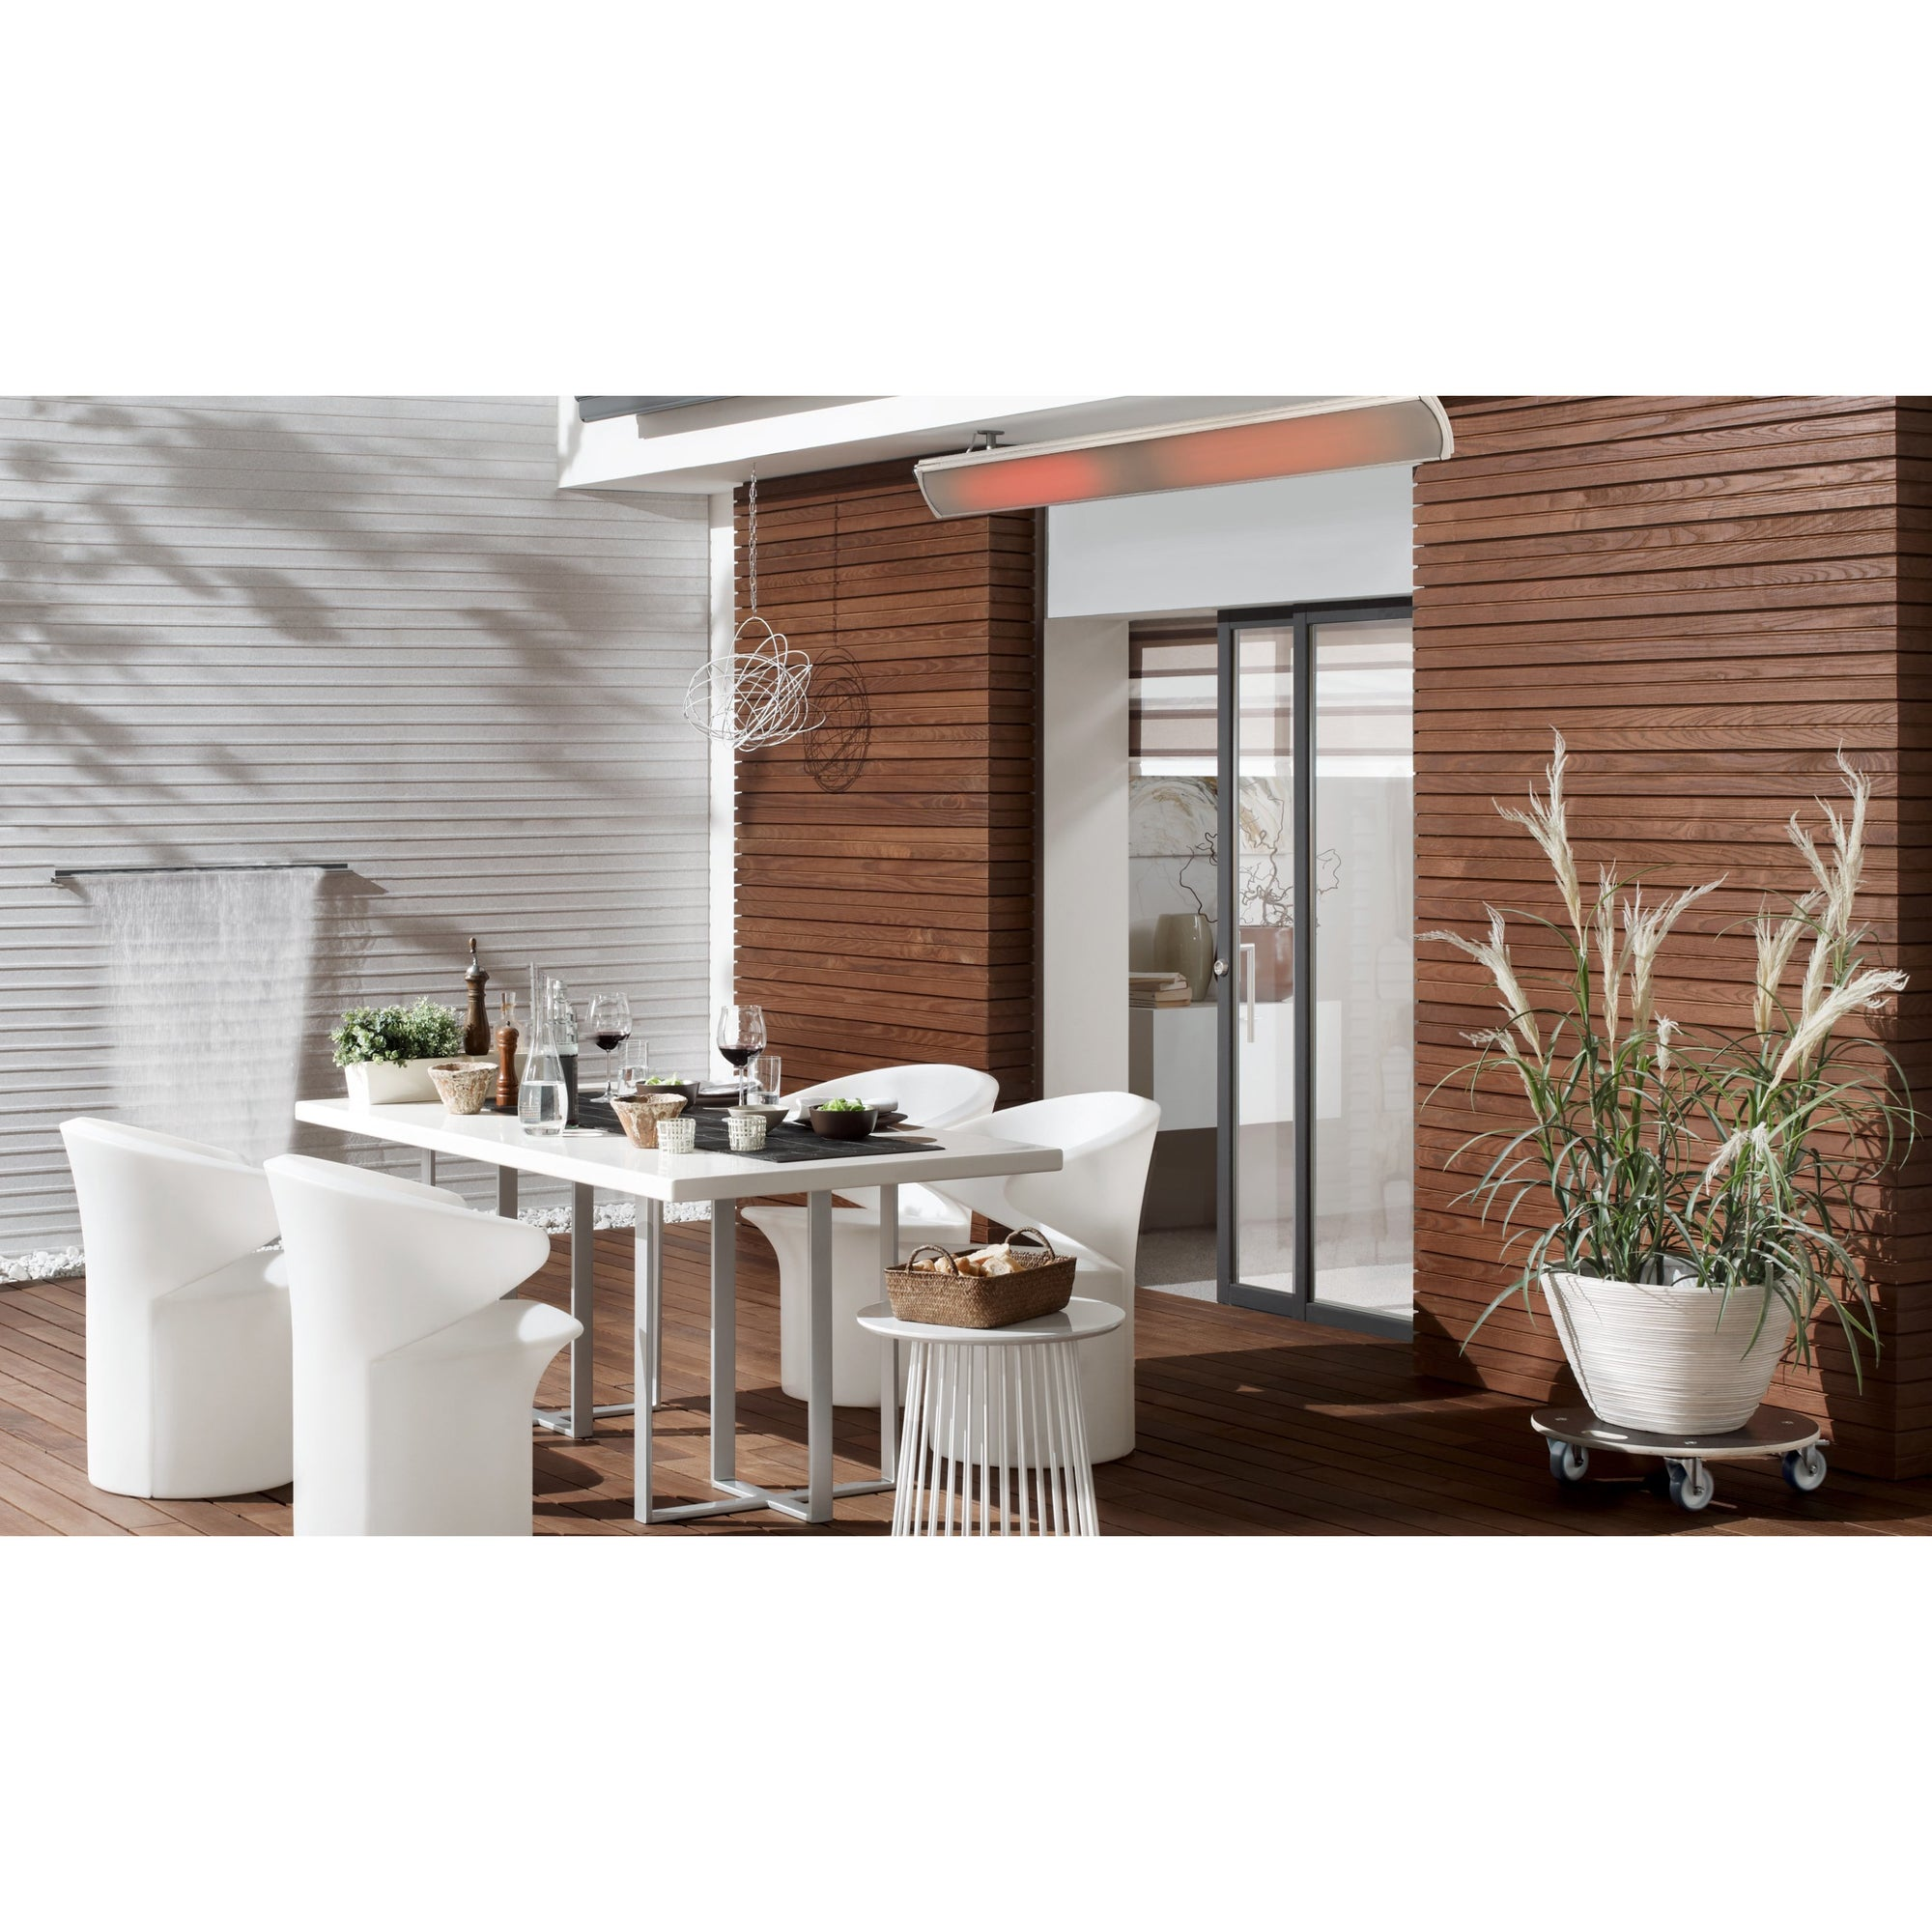 Vision 3200W Infrared Radiant Heater- Outdoor Living ... on Vision Outdoor Living id=70318